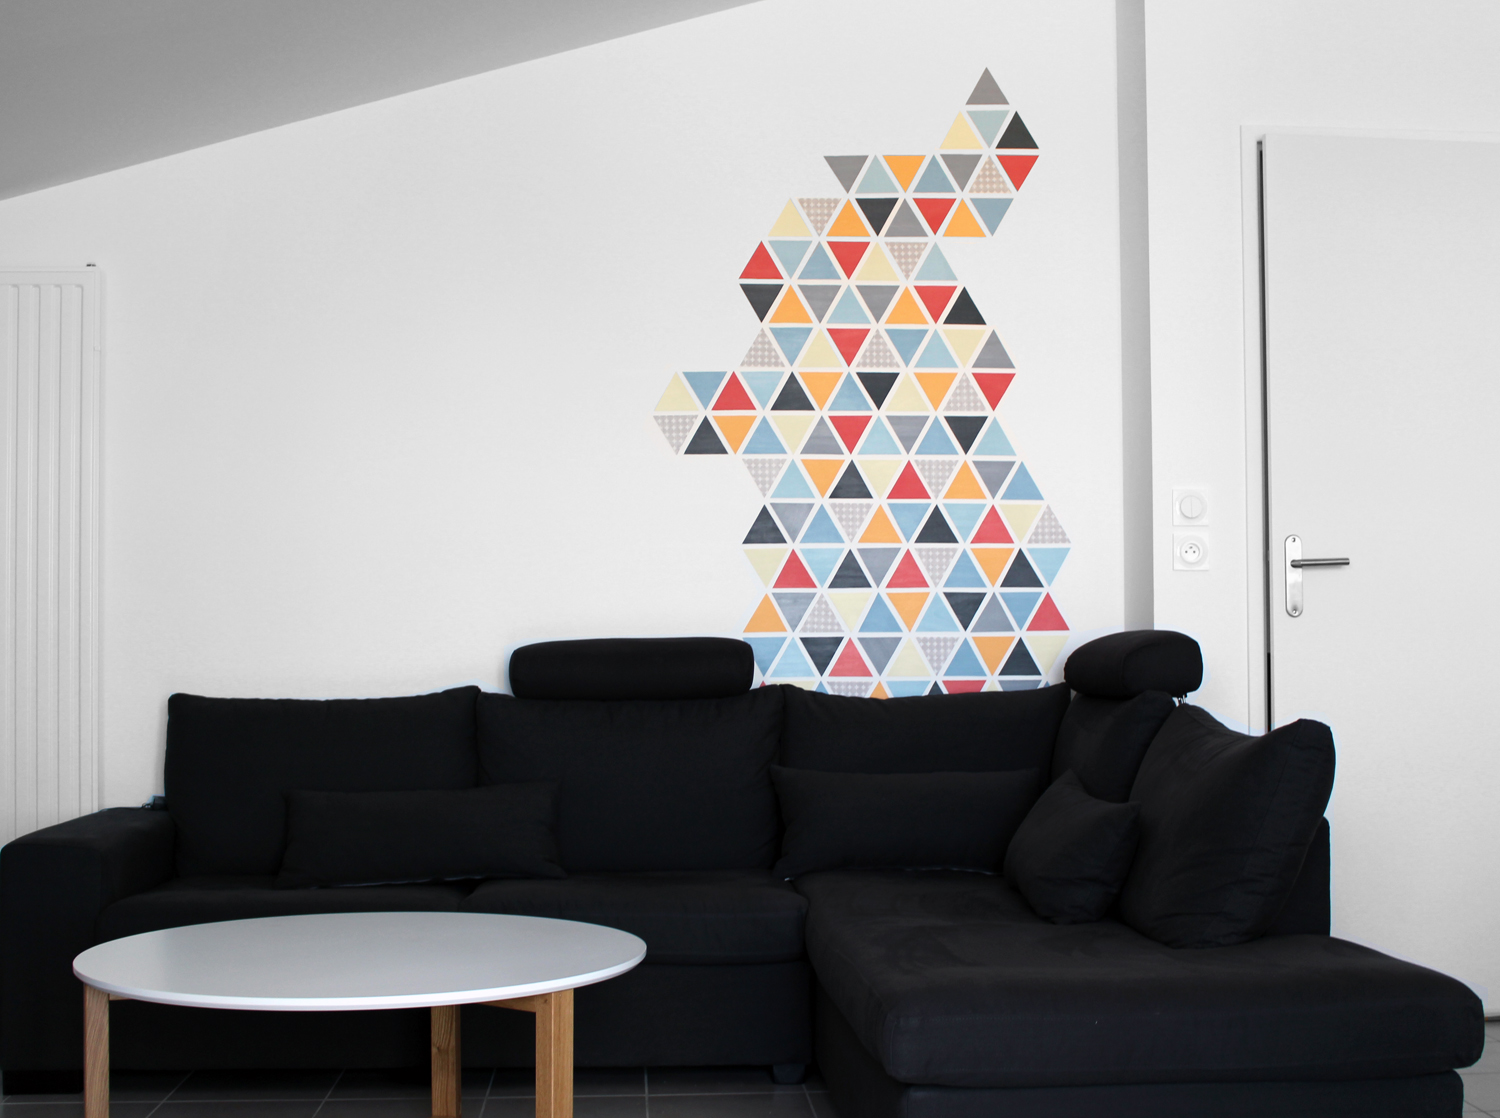 Peindre Triangle Sur Mur diy - petits triangles scandinaves - couture addicted